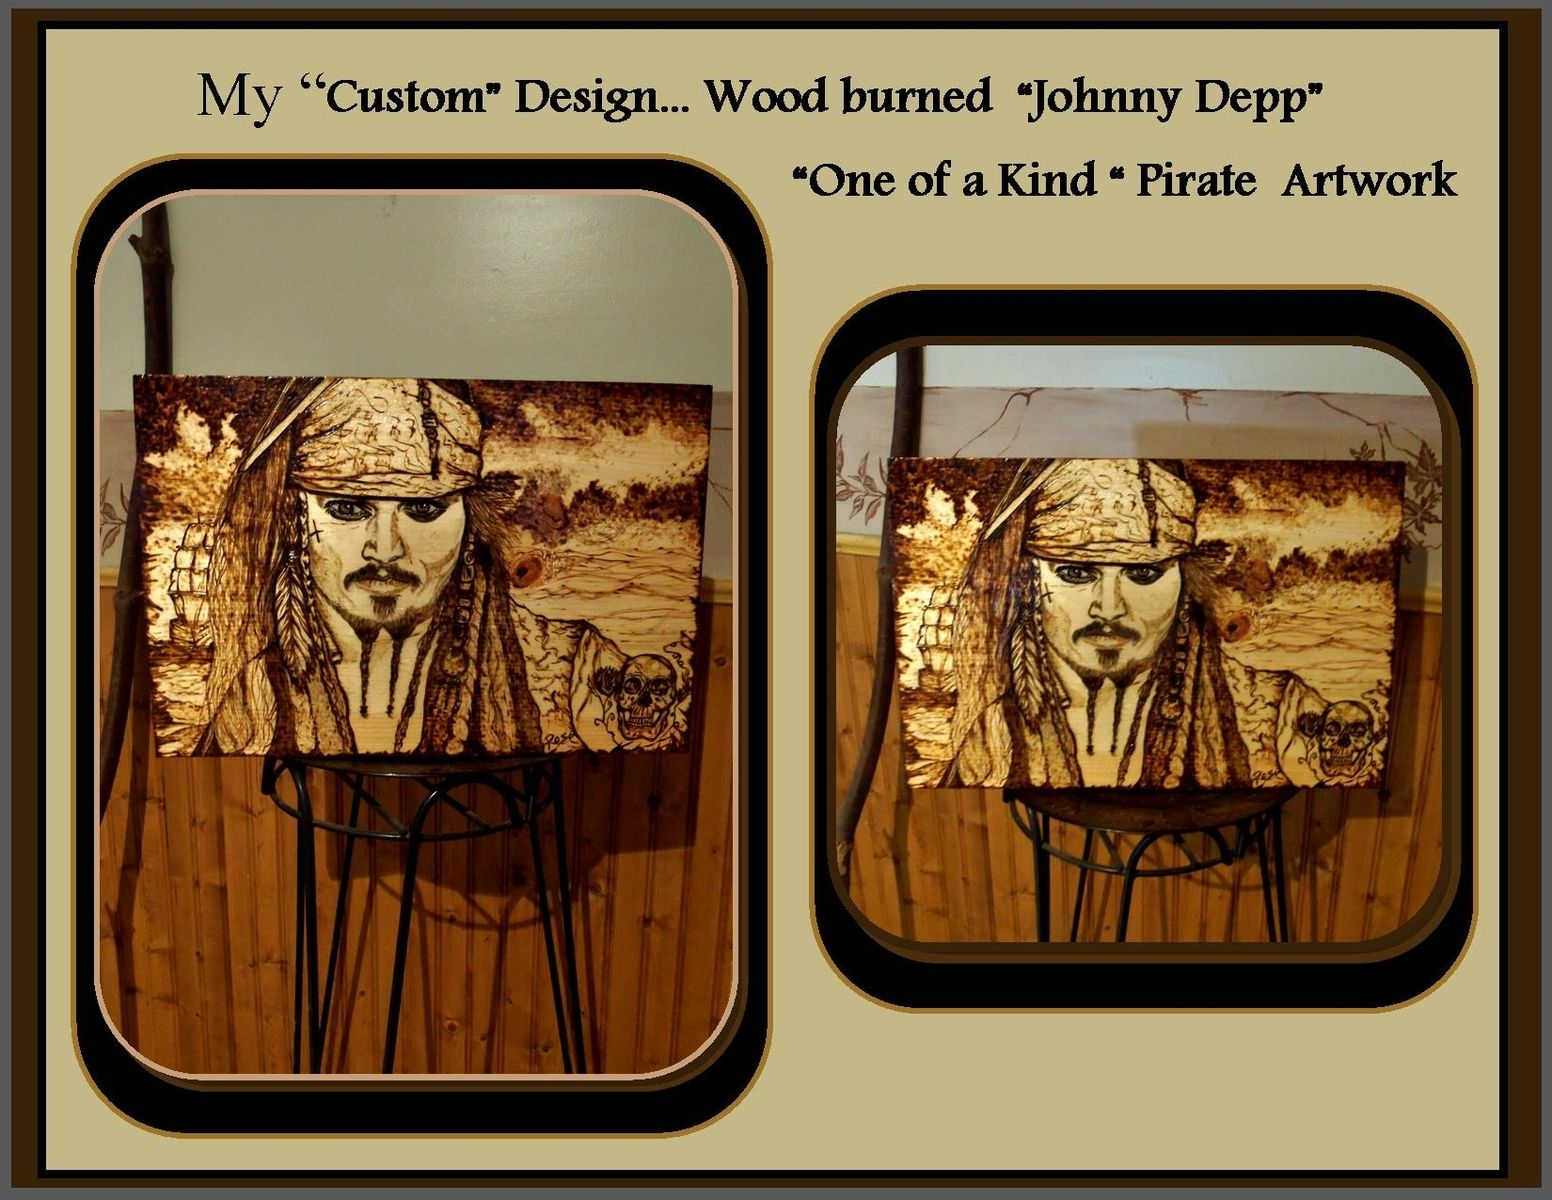 Man Cave Gift Ideas Canada : Buy custom johnny depp pirates of the carribbean art